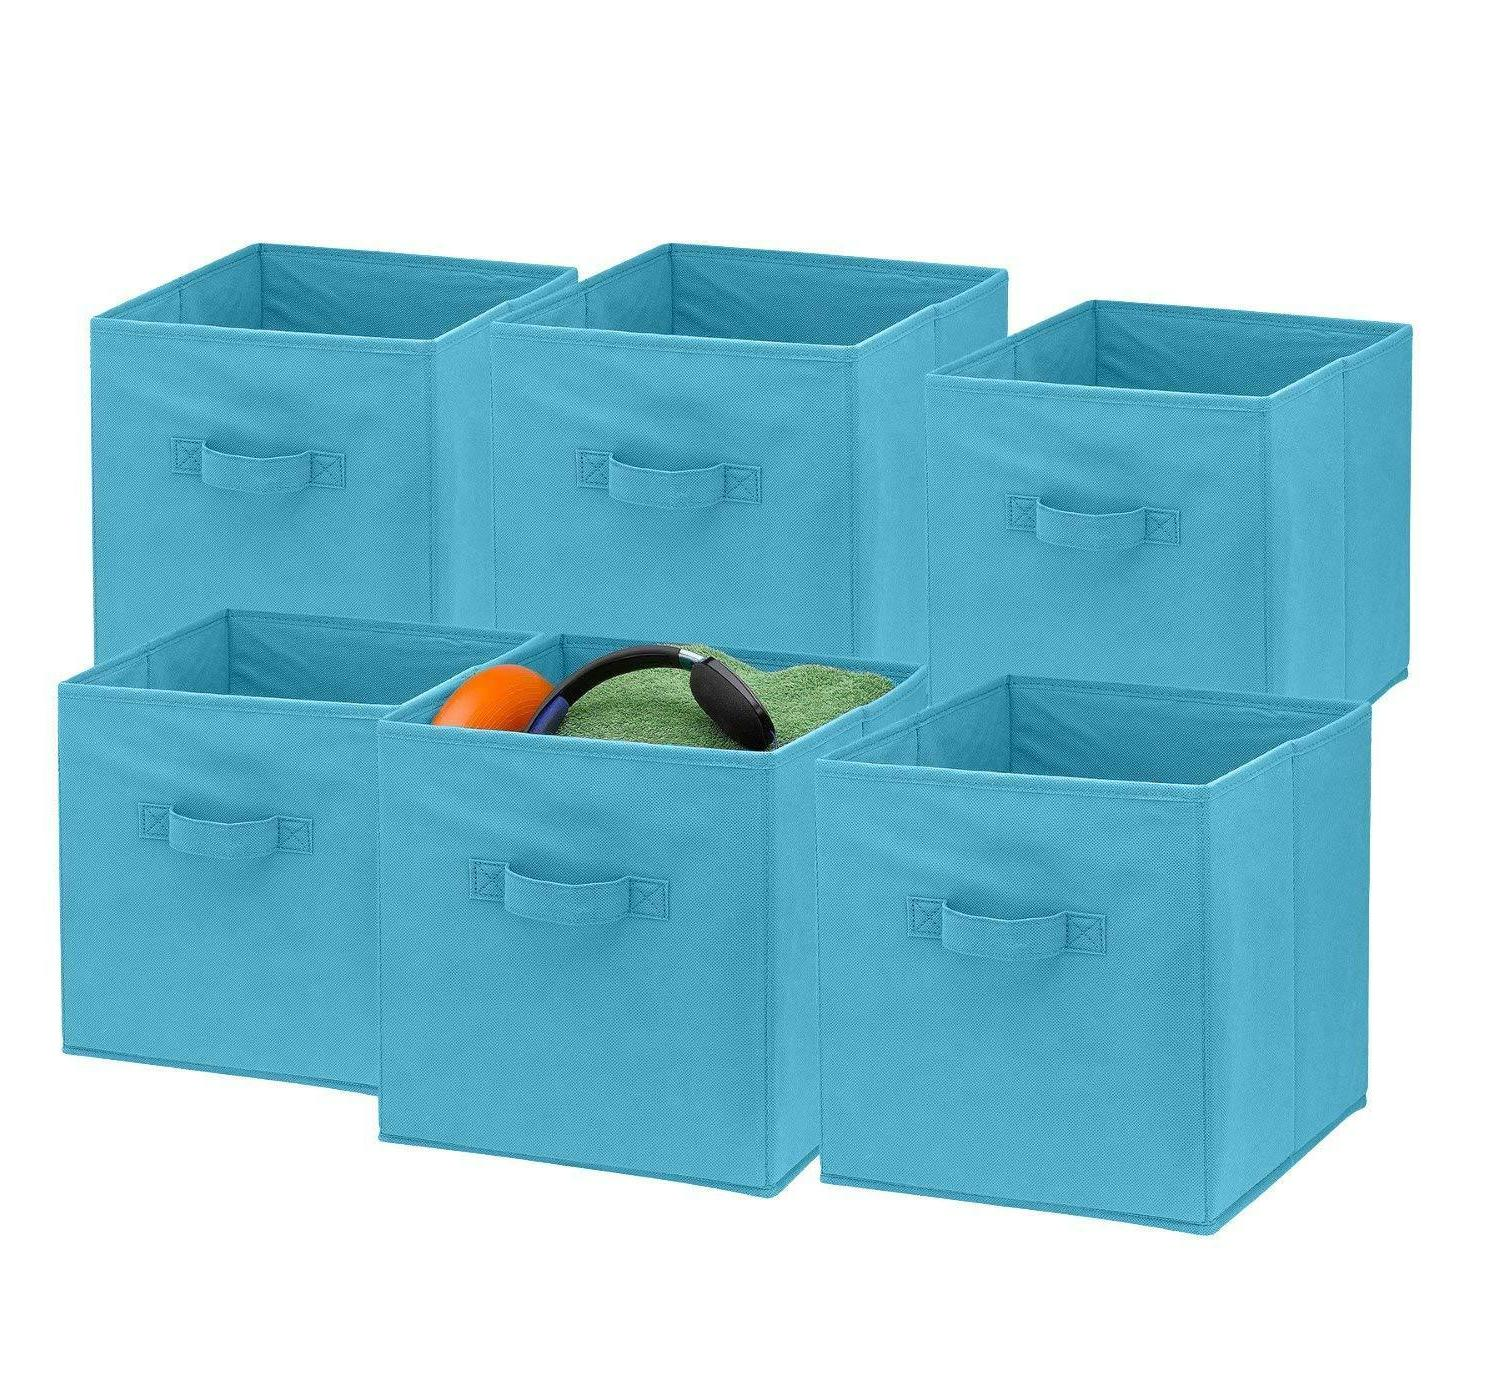 6 Foldable Cubes Shelf Basket Box